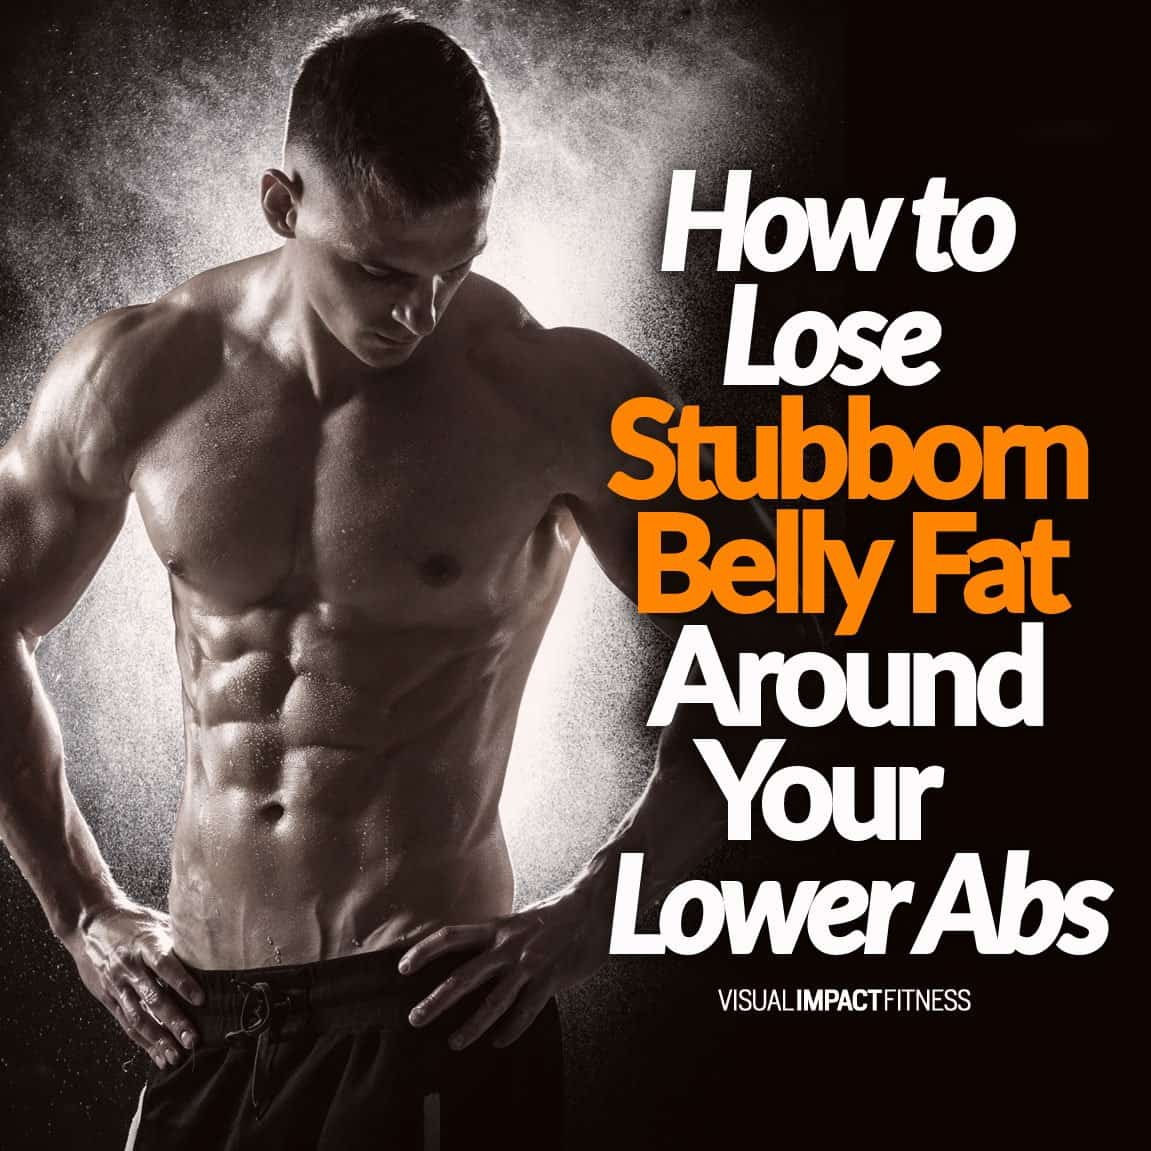 How To Lose Stubborn Belly Fat Around Lower Abs (1)